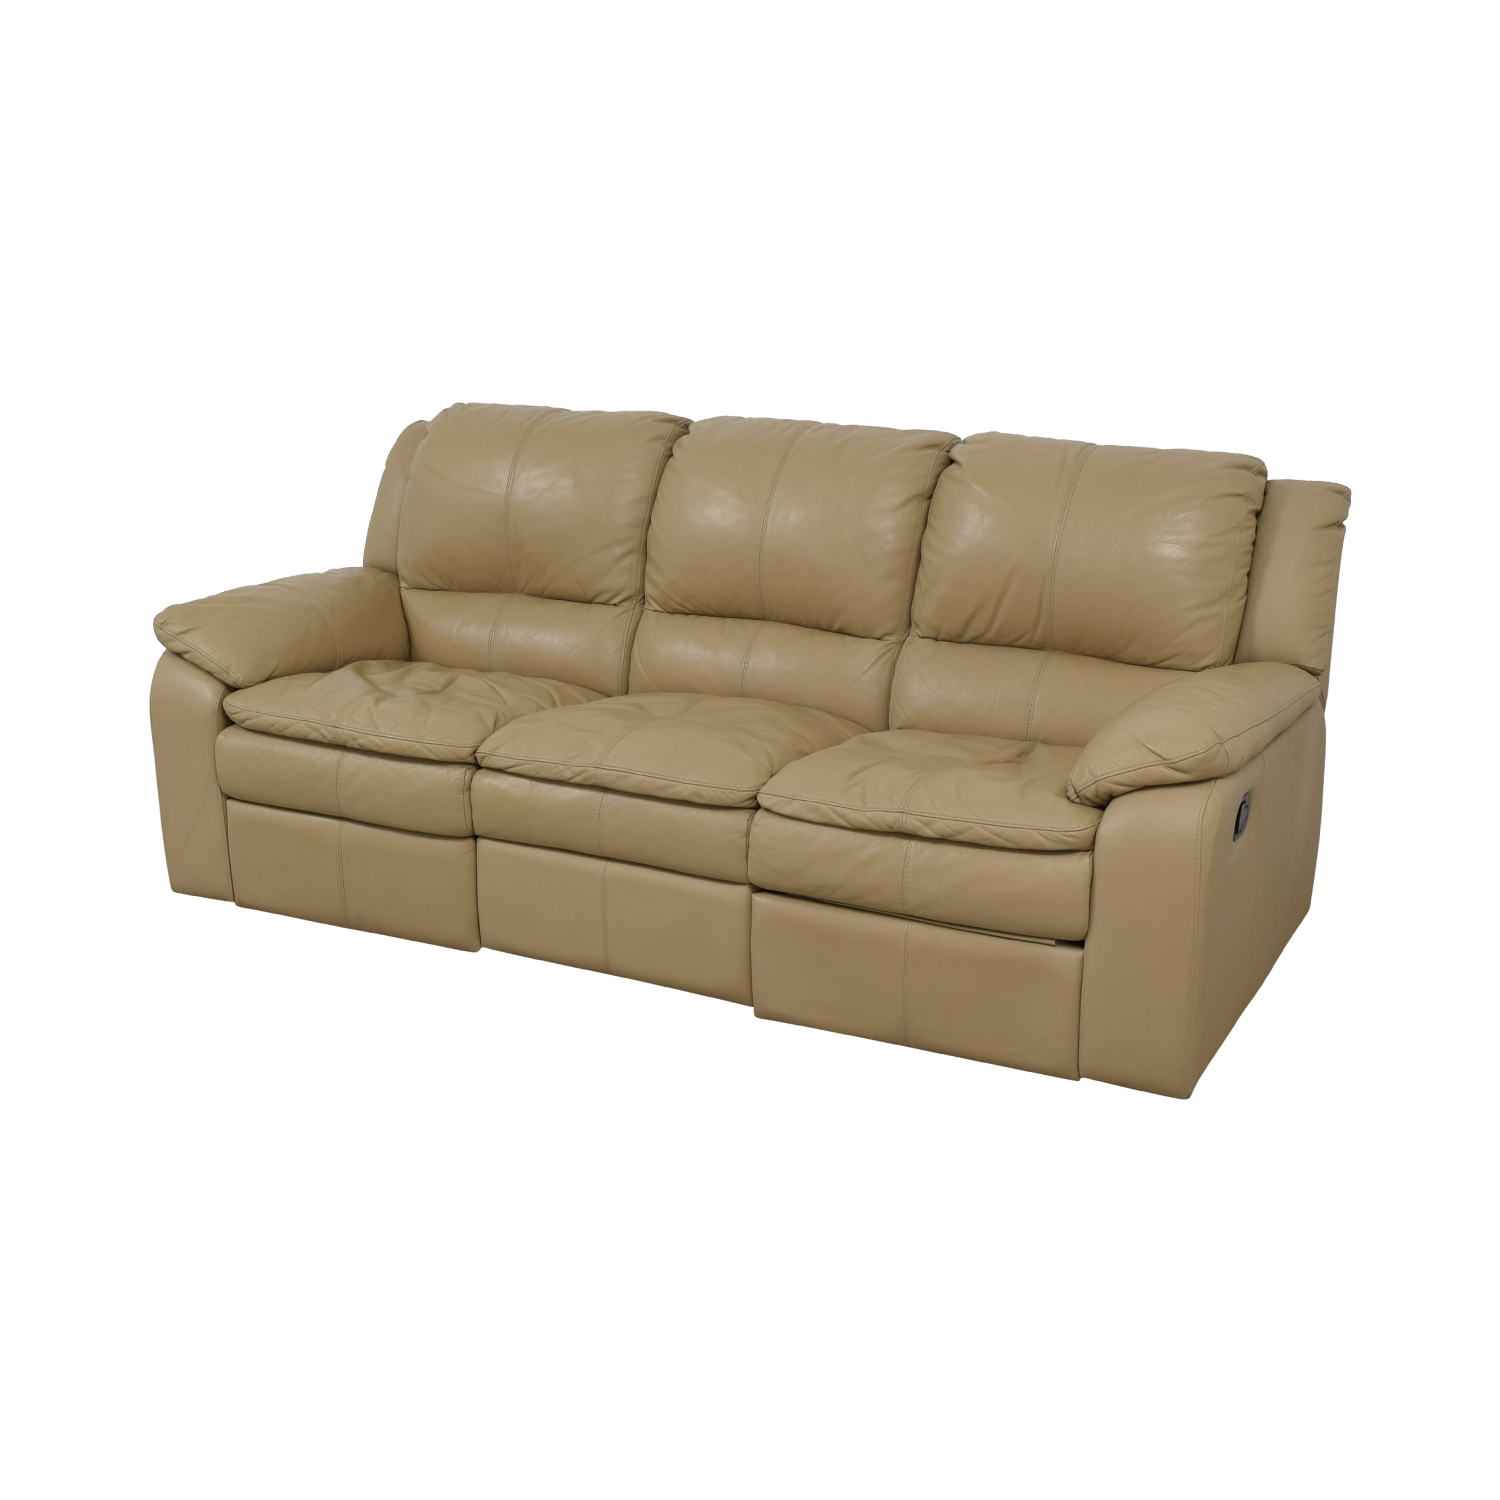 Superb 77 Off Jennifer Furniture Jennifer Furniture Beige Leather Three Seater Reclining Sofa Sofas Gmtry Best Dining Table And Chair Ideas Images Gmtryco